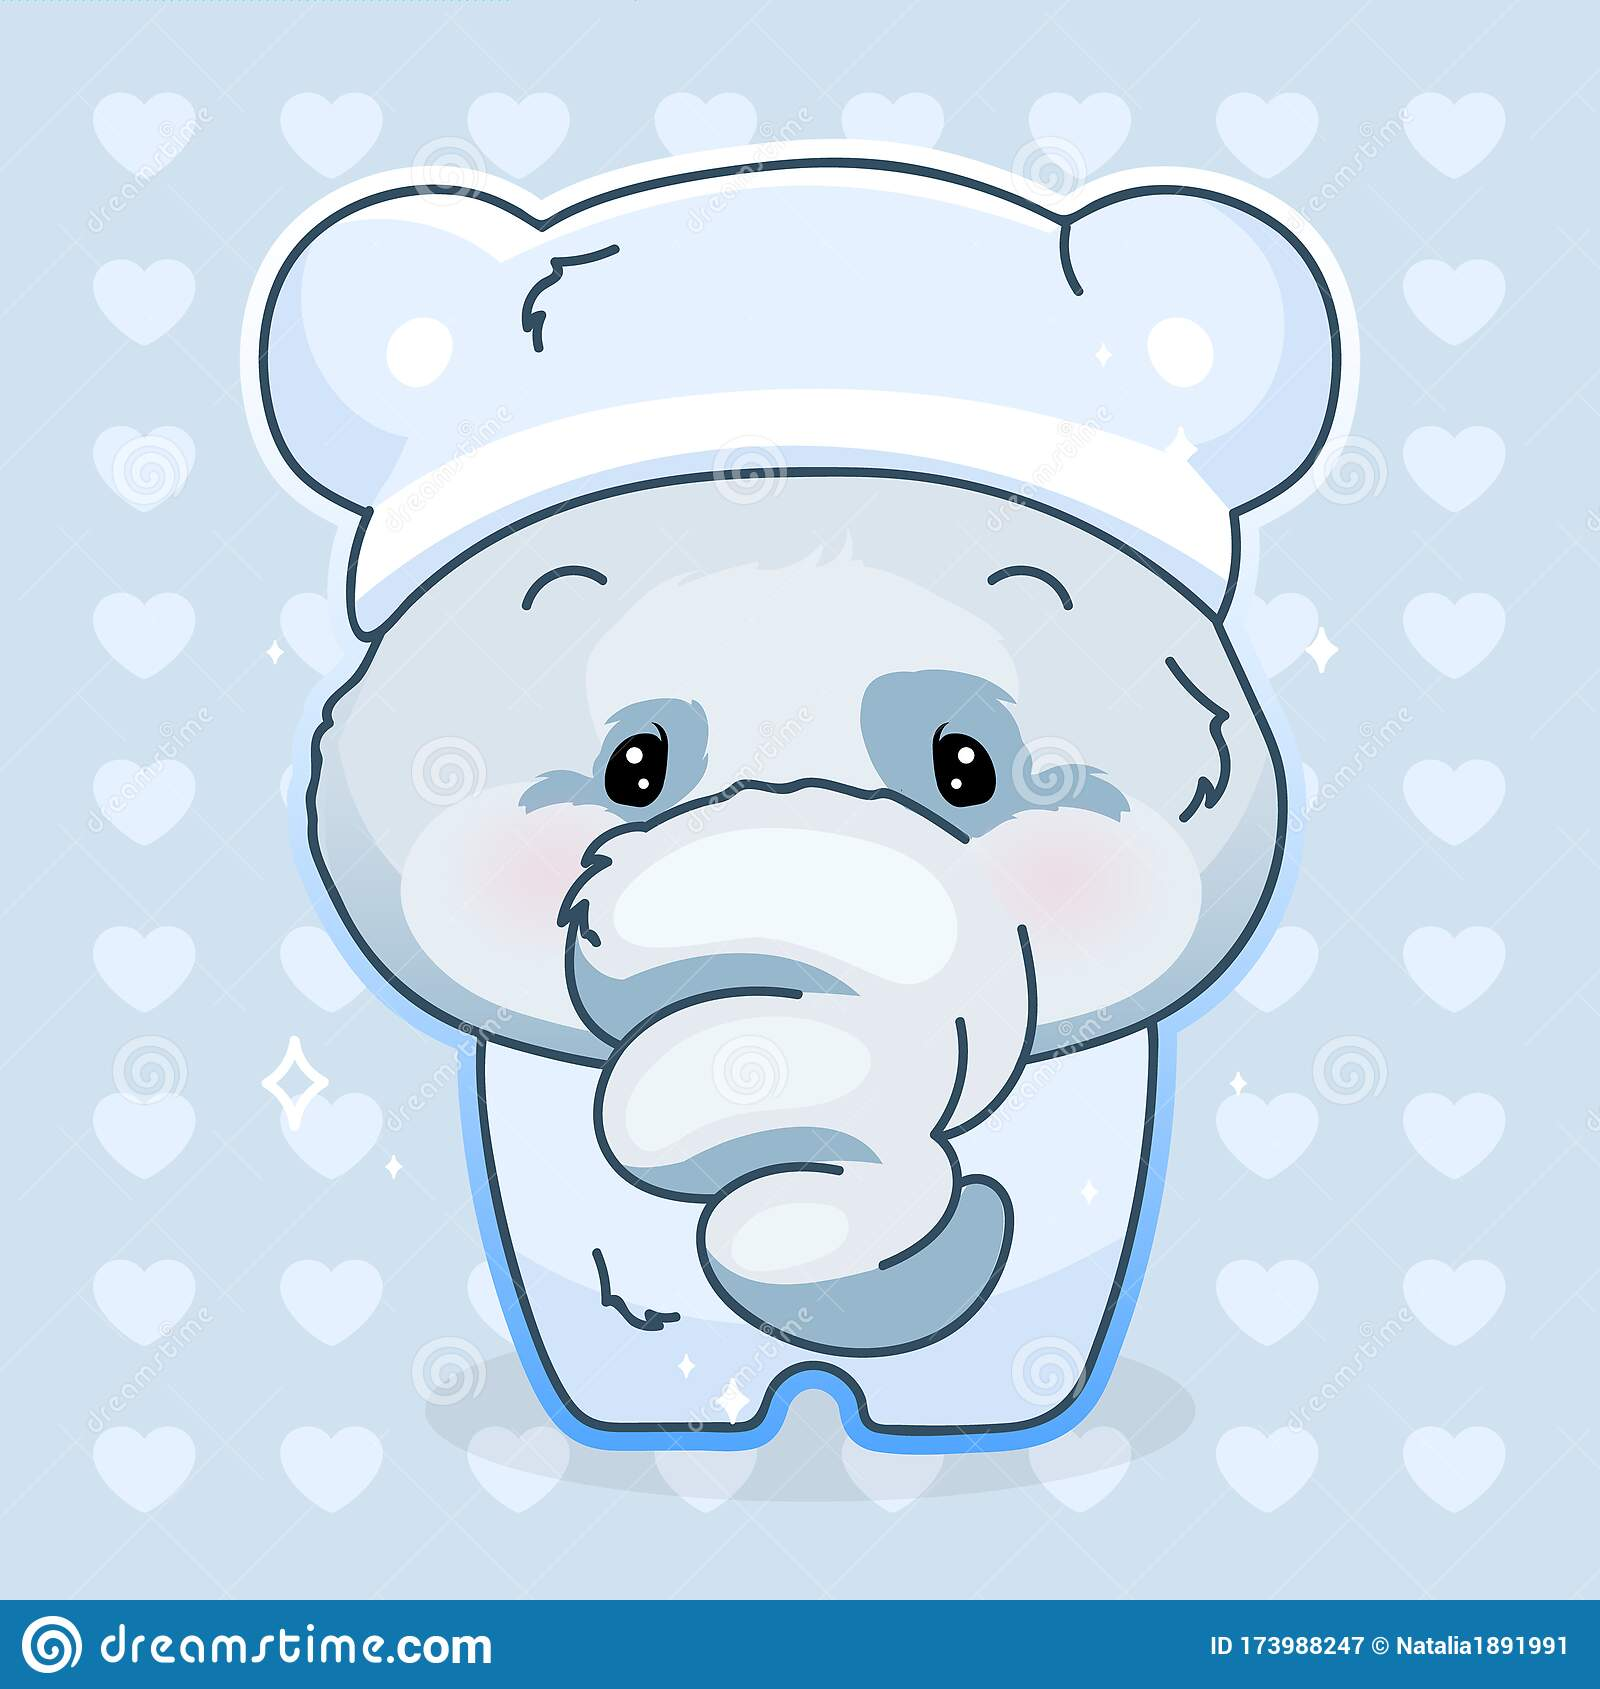 Cute Elephant Kawaii Cartoon Vector Character Adorable And Funny Animal In Pajamas Isolated Sticker Patch Anime Baby Boy Stock Vector Illustration Of Elephant Nightwear 173988247